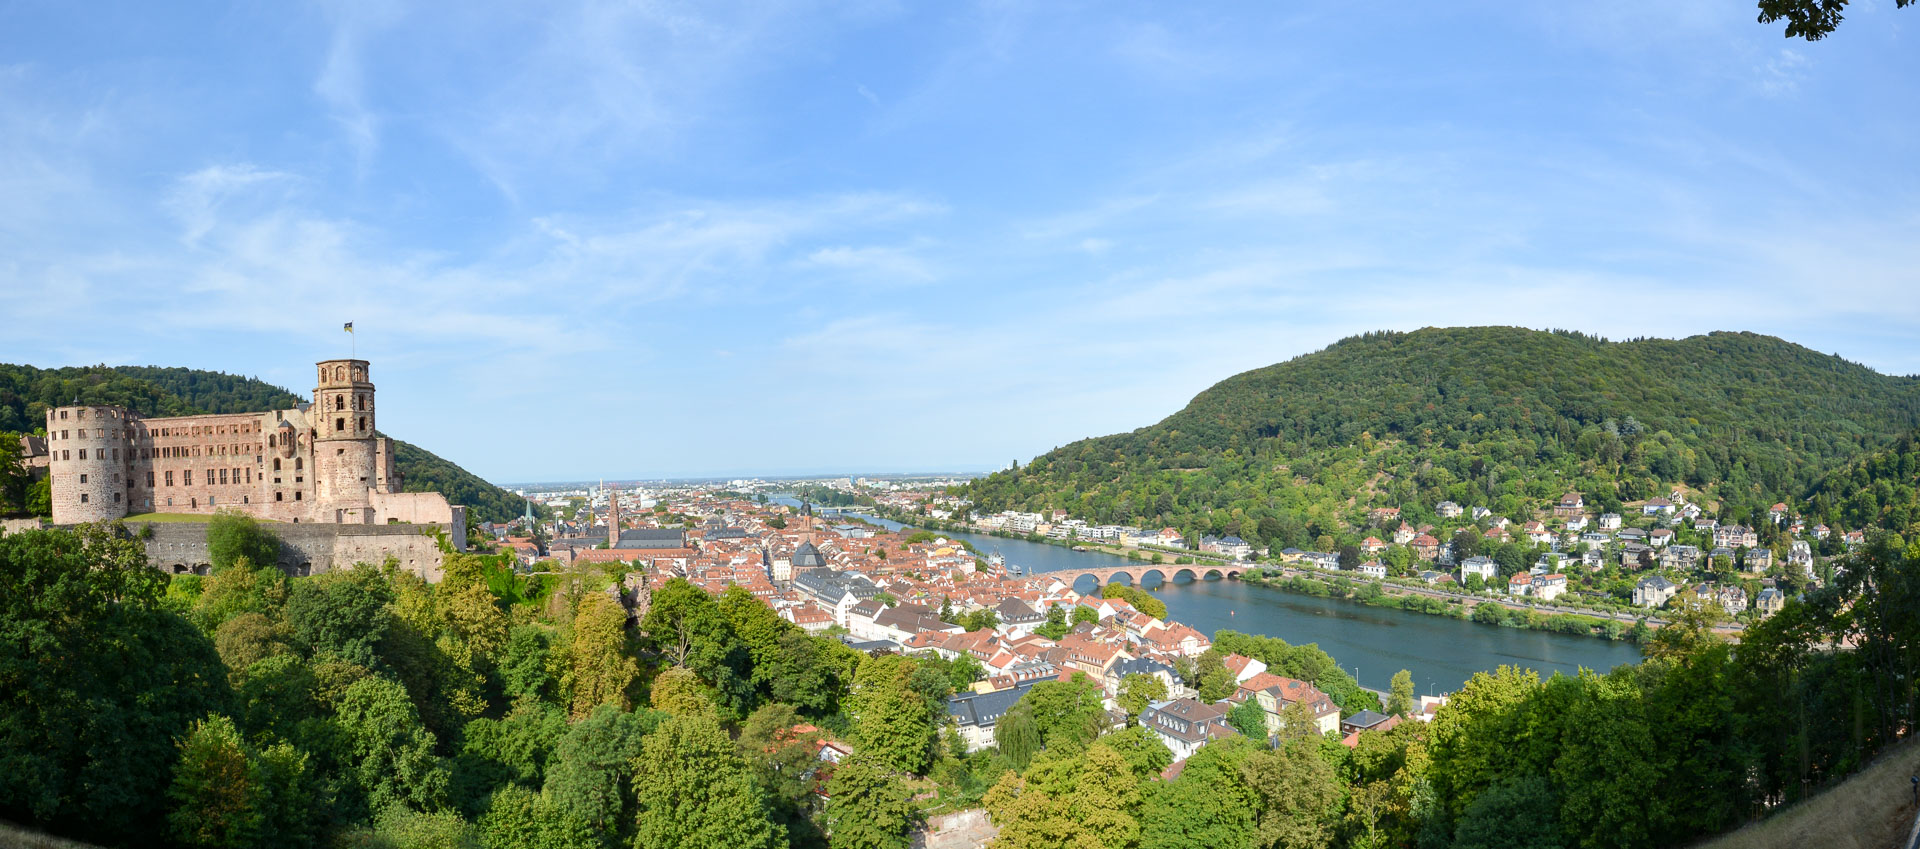 Heidelberg Schloss and Old Town